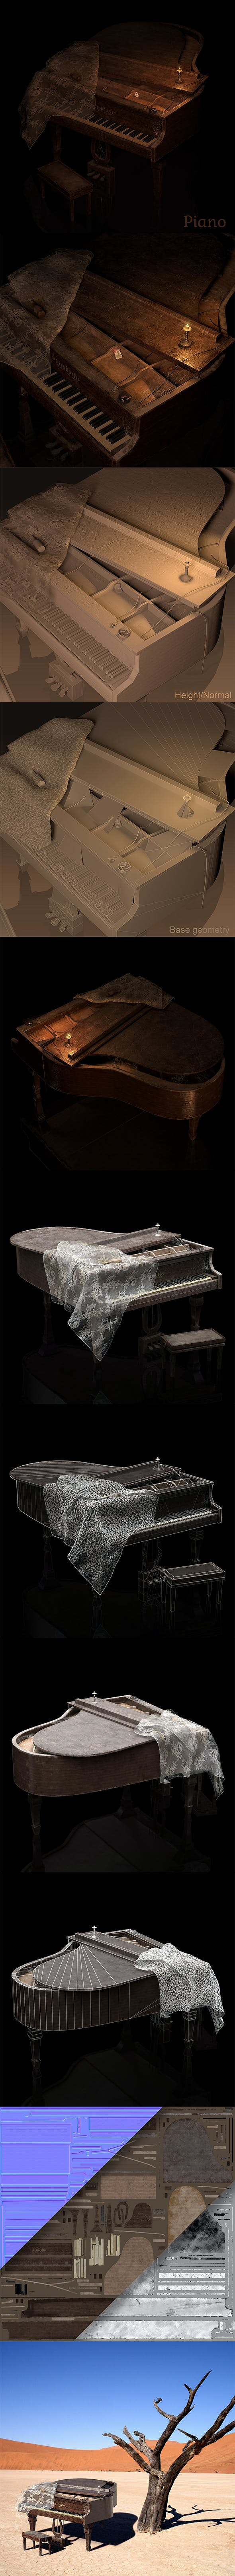 Grand Piano - 3DOcean Item for Sale